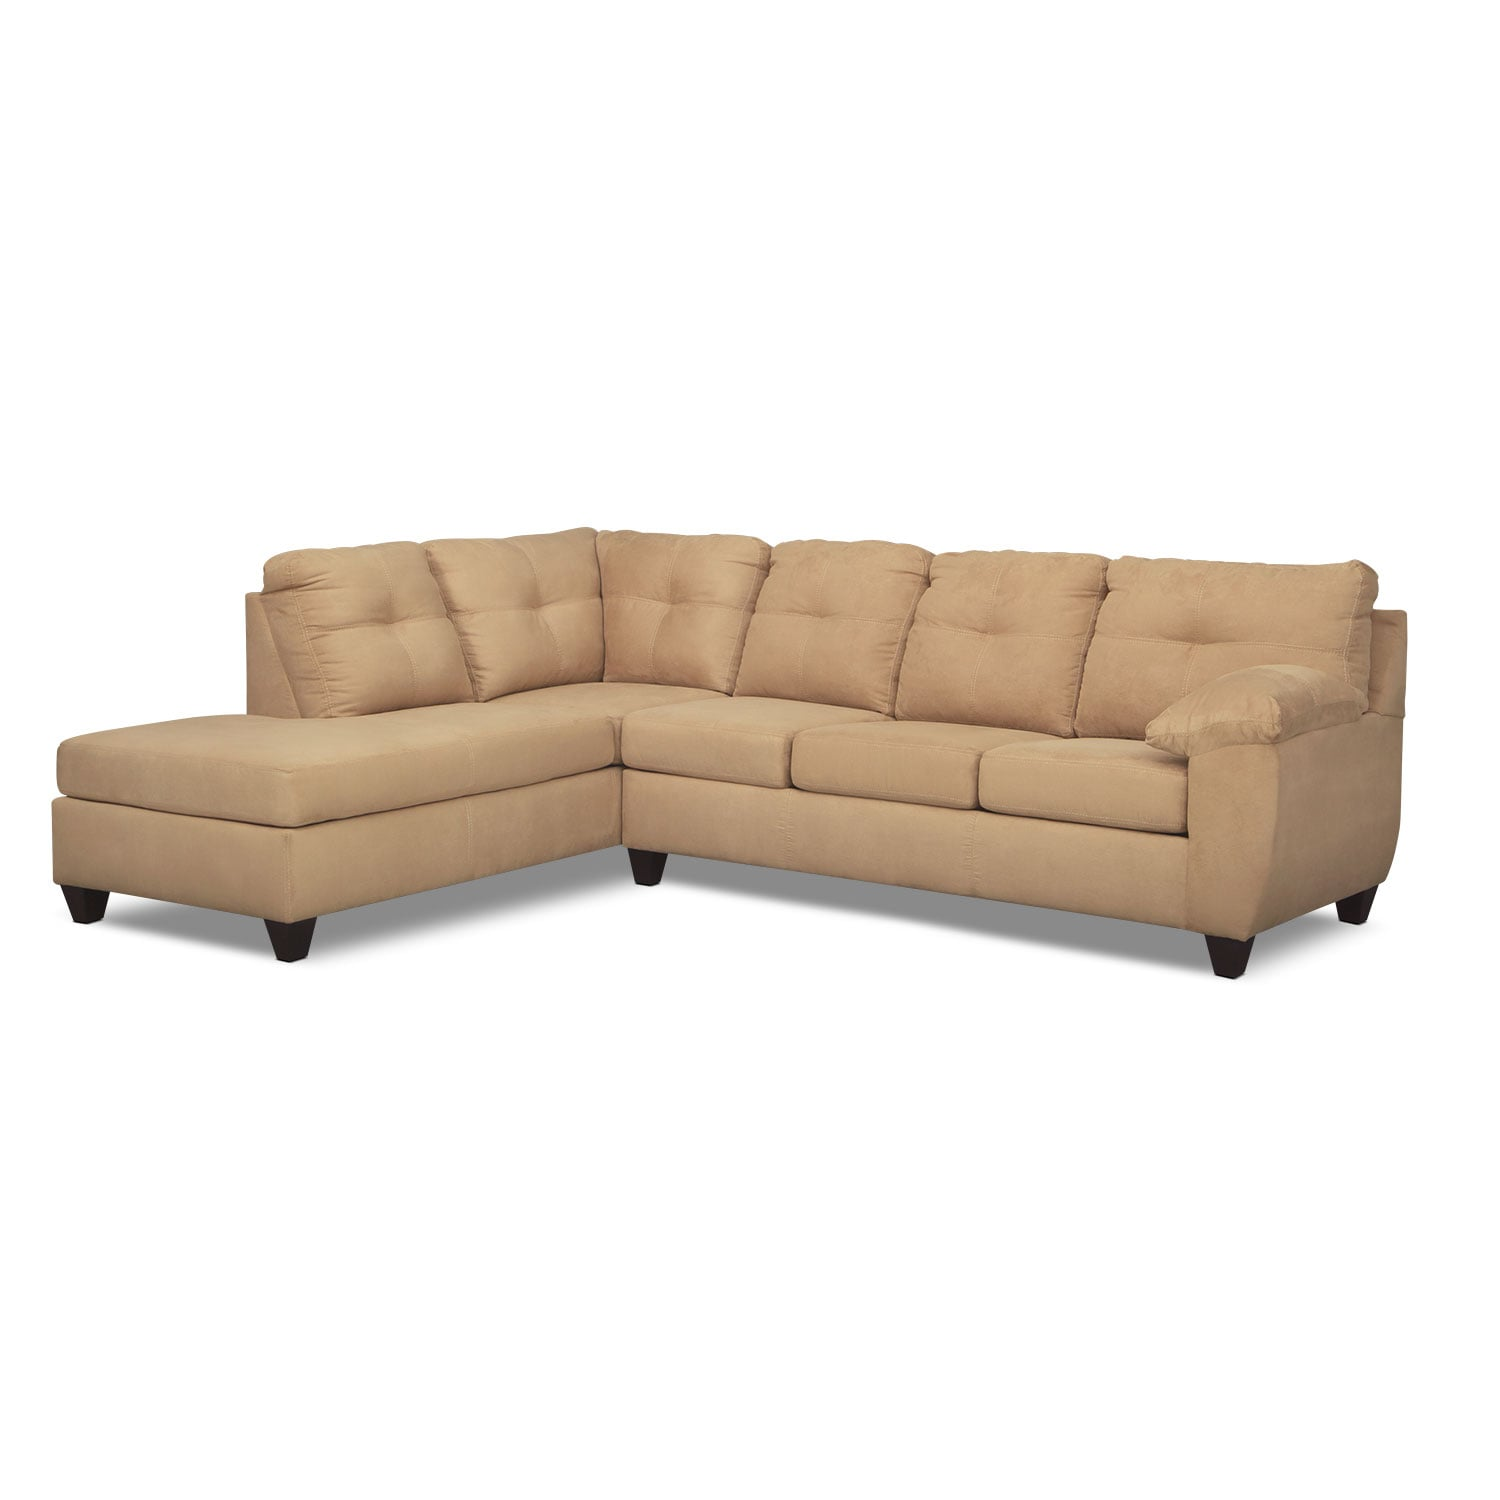 Rialto Camel 2 Pc. Memory Foam Sleeper Sectional with Left-Facing Chaise